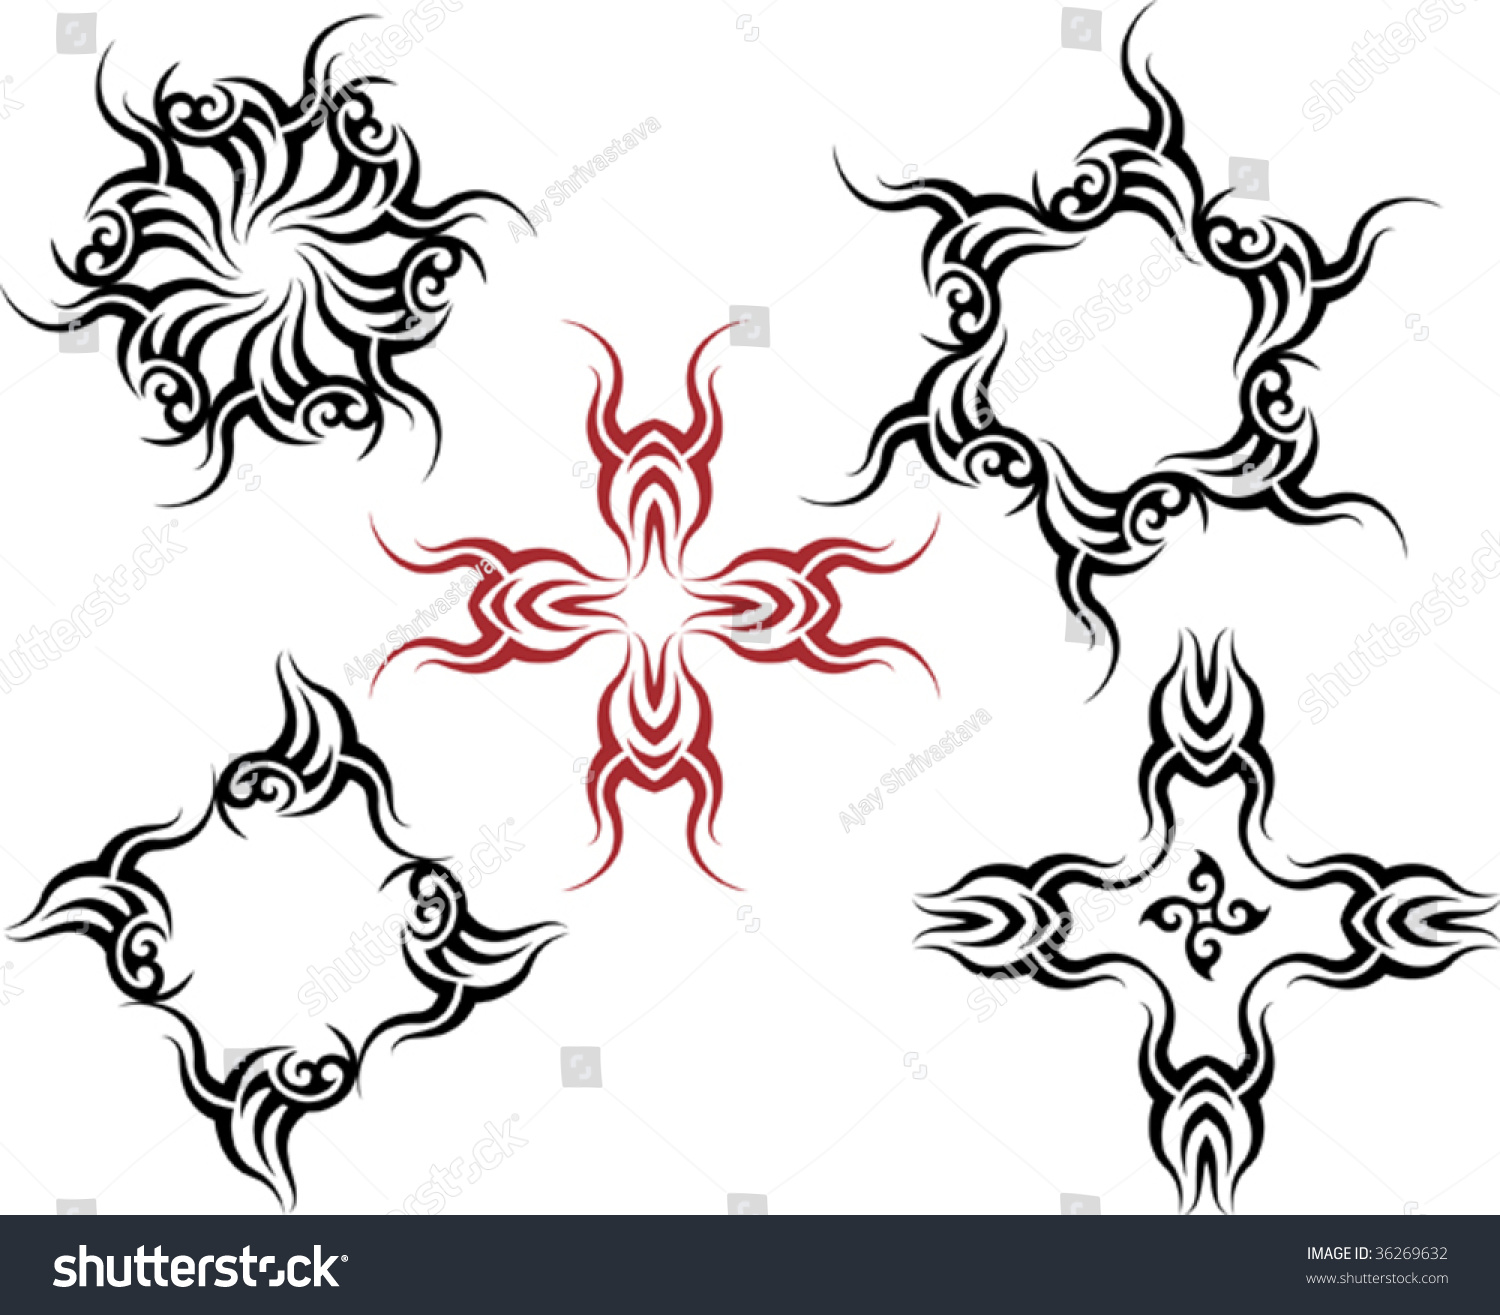 Vector Tribal Tattoo Set Cross, Sun, Flame Designs - 36269632 ...